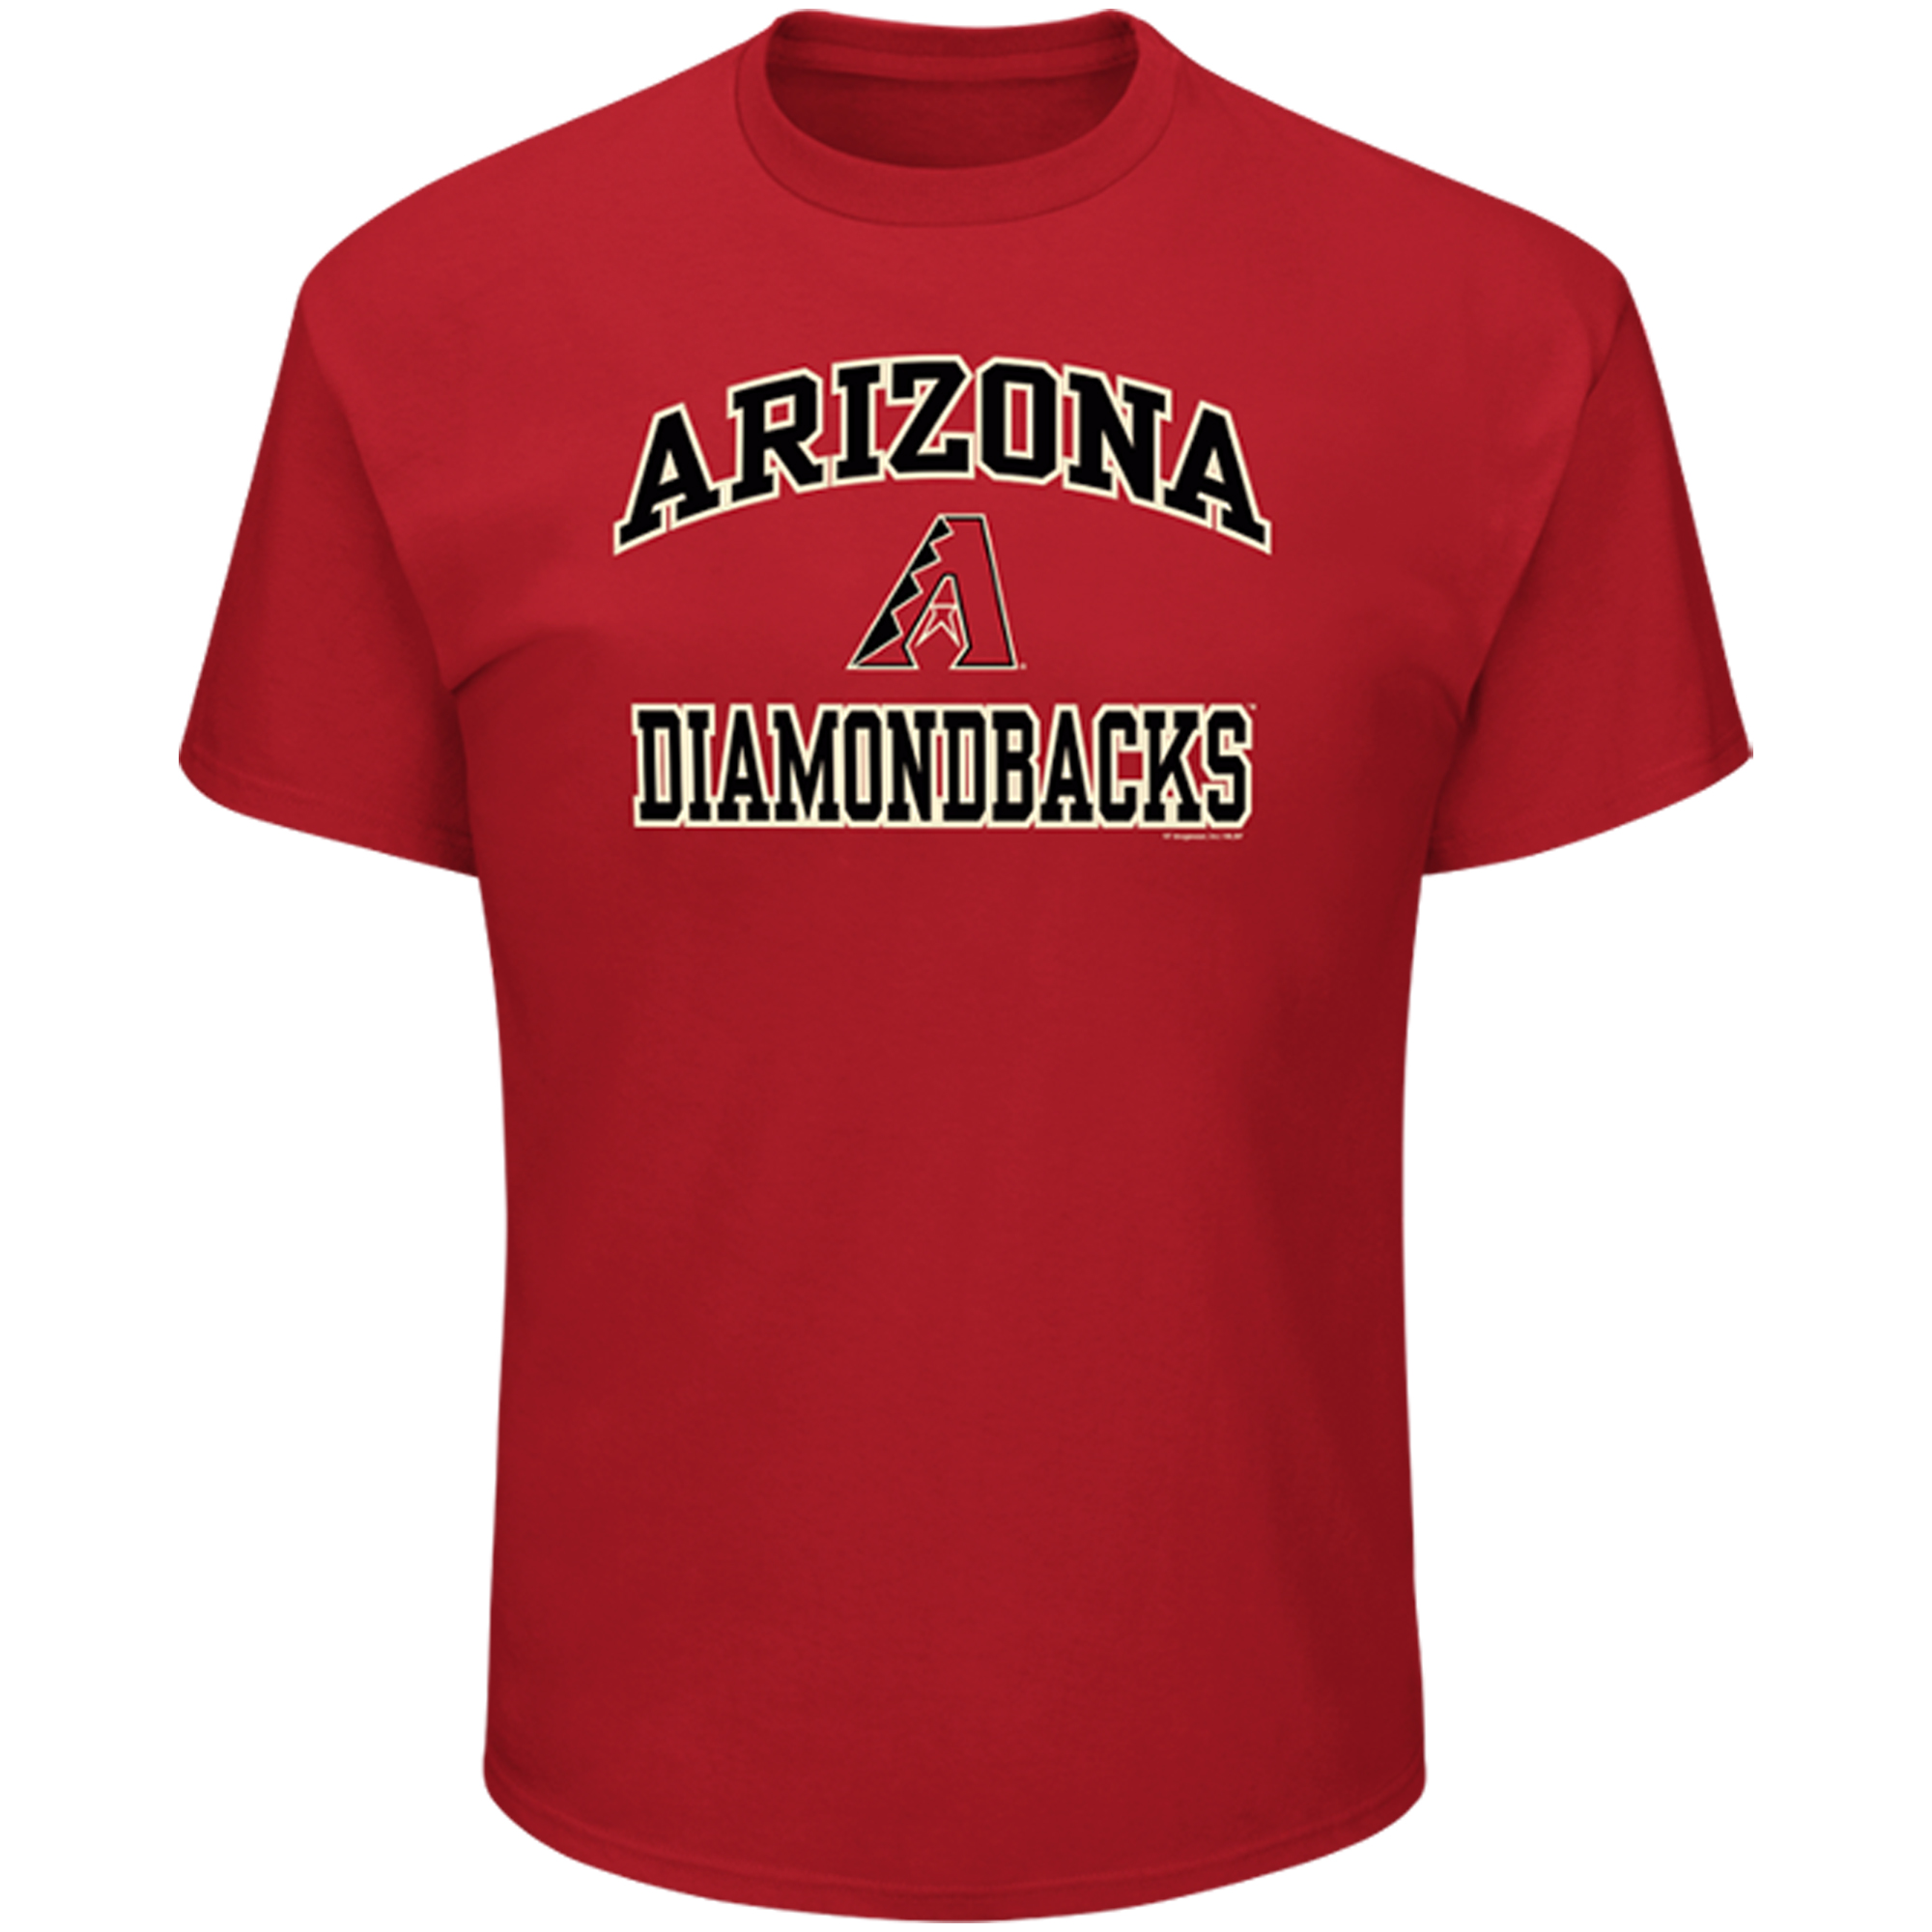 Men's Majestic Red Arizona Diamondbacks High Praise T-Shirt